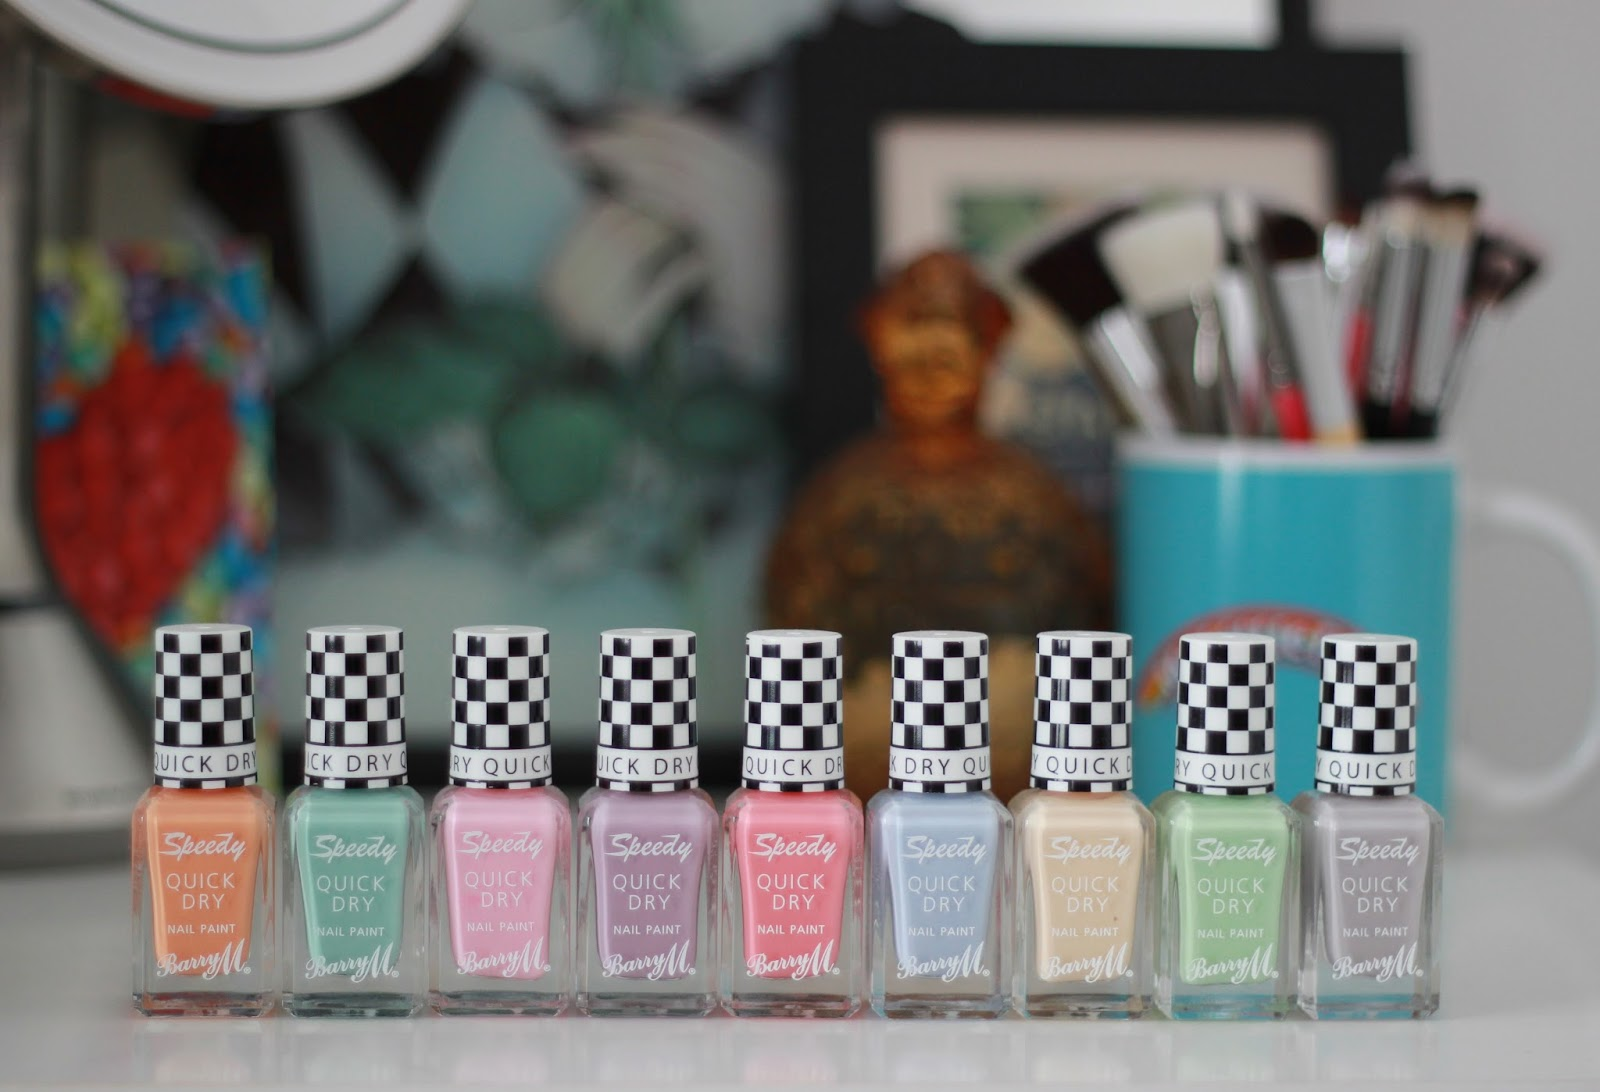 Barry M Speedy quick dry nail paint collection